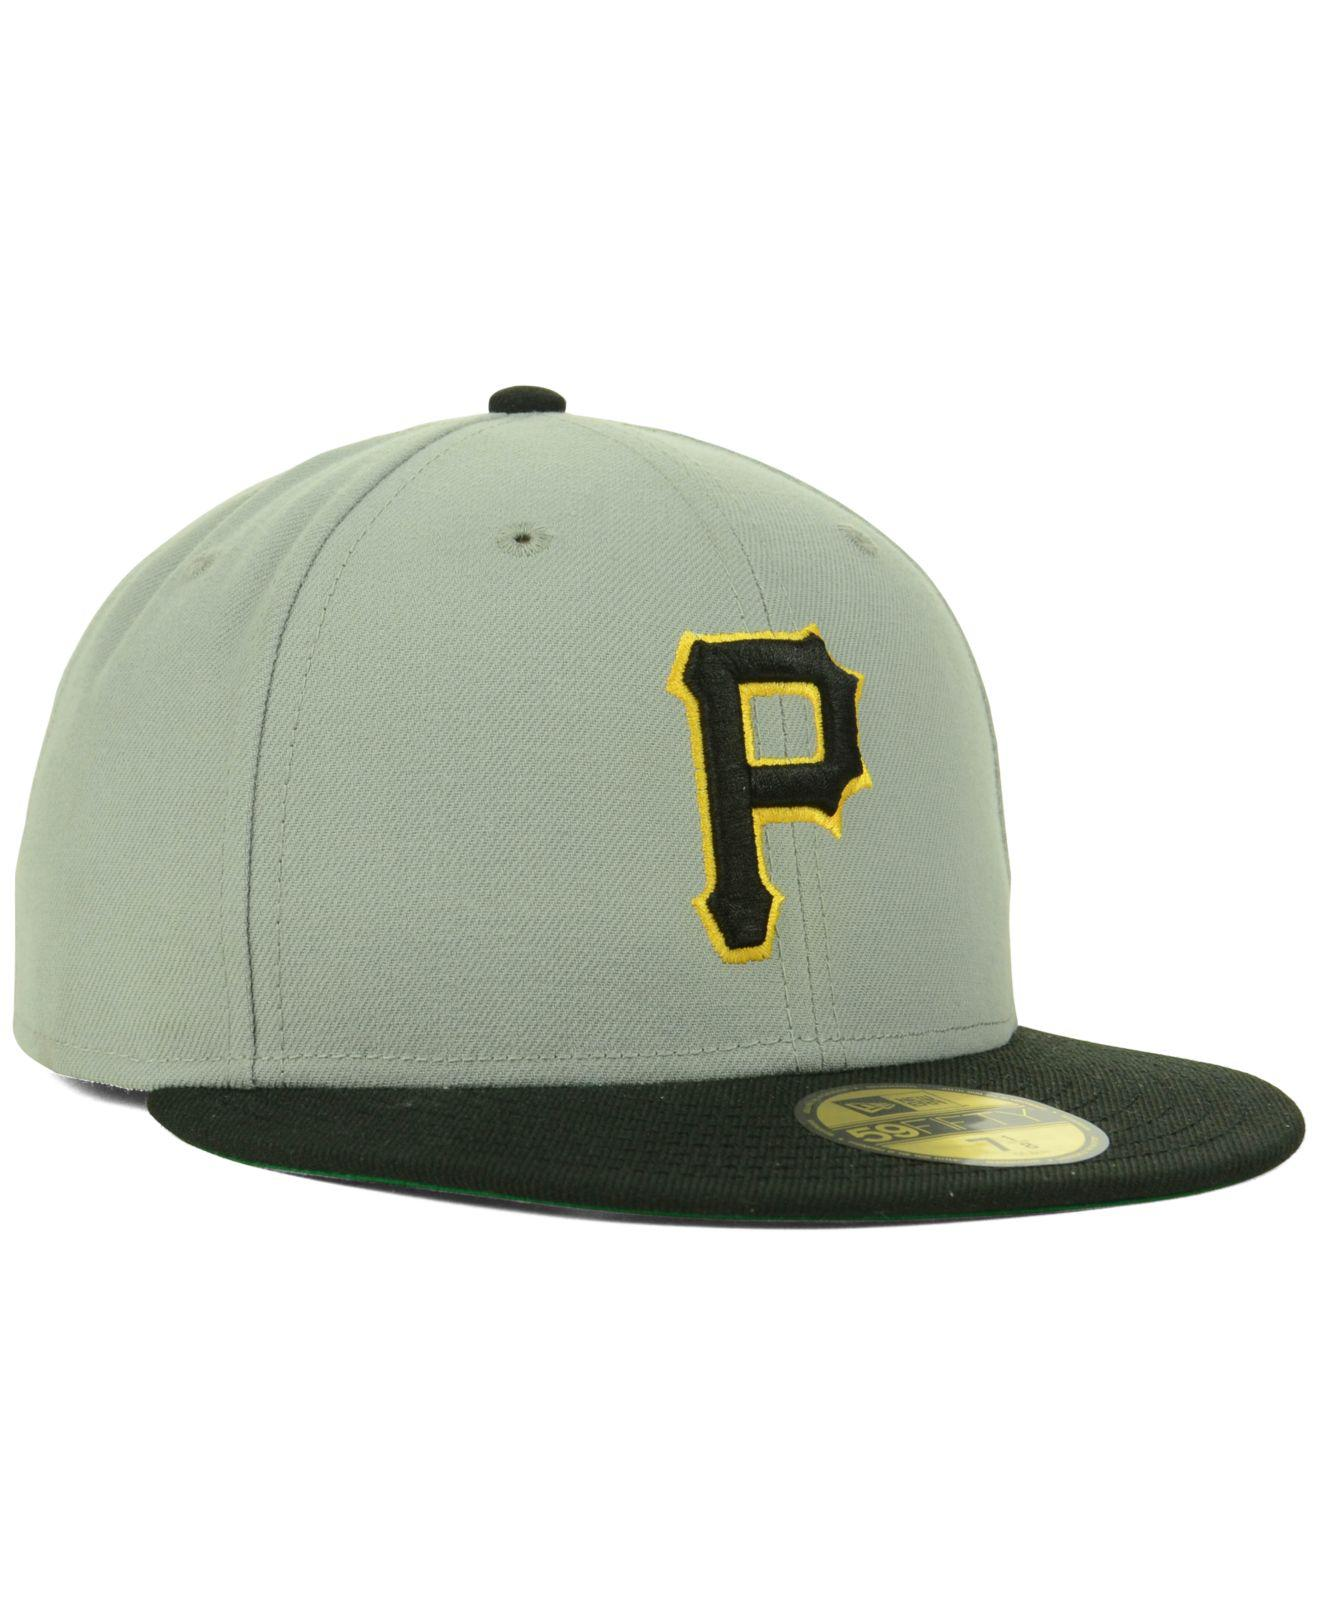 buy popular ad449 089ca ... hot lyst ktz pittsburgh pirates cooperstown 59fifty cap in gray for men  68166 81dad